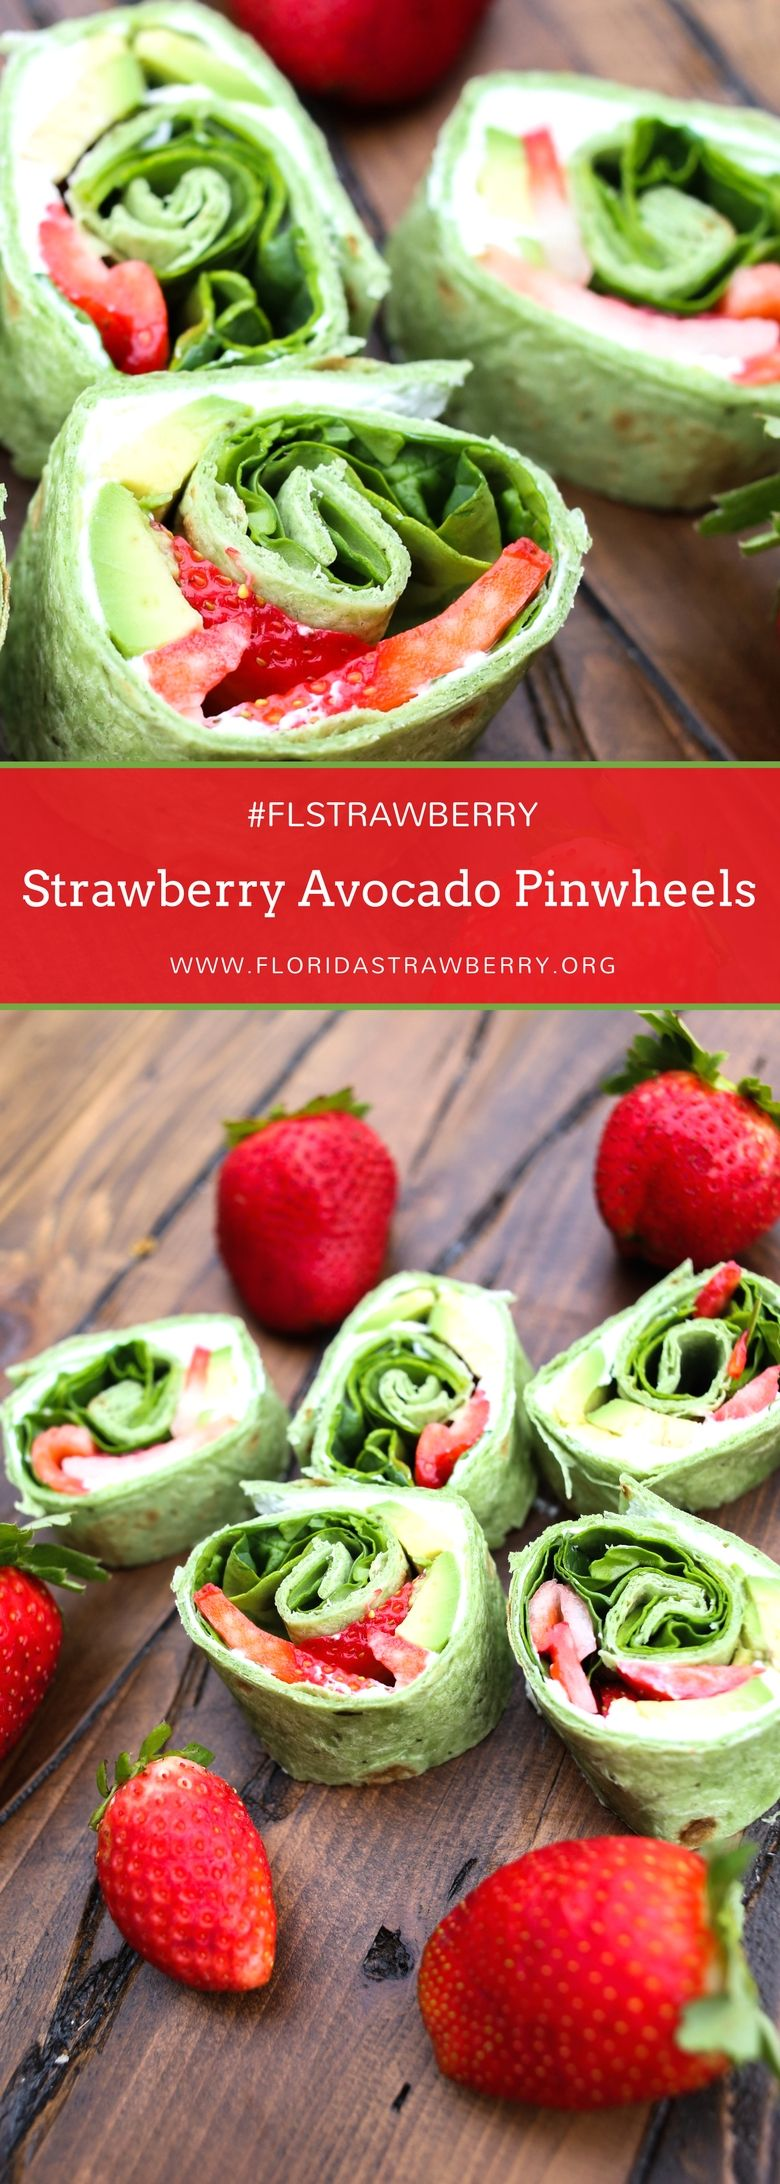 We have the richness of the avocados, the sweetness of the strawberries, a bit of tang from the lemon goat cheese, the bite of red onion, and the crunch from raw spinach leaves…. These little strawberry avocado pinwheels are such a great, fresh bite to enjoy as an appetizer, and they're so easy to put together! #FLStrawberry #strawberryrecipes #strawberries #avocado #easyrecipe